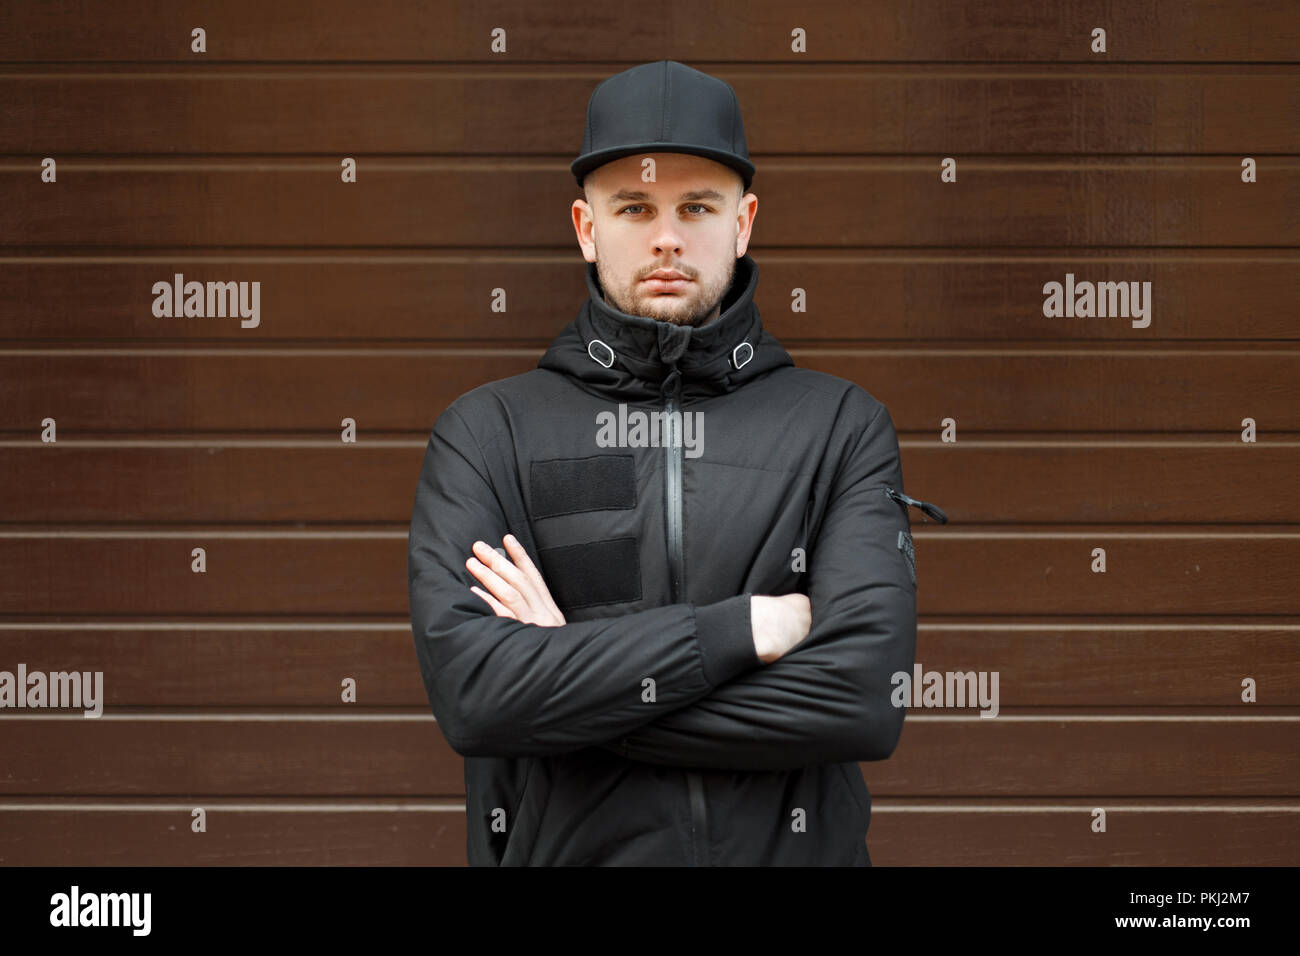 31452b5e6cf stylish handsome man in a black fashionable baseball cap and black winter  jacket stands and looks